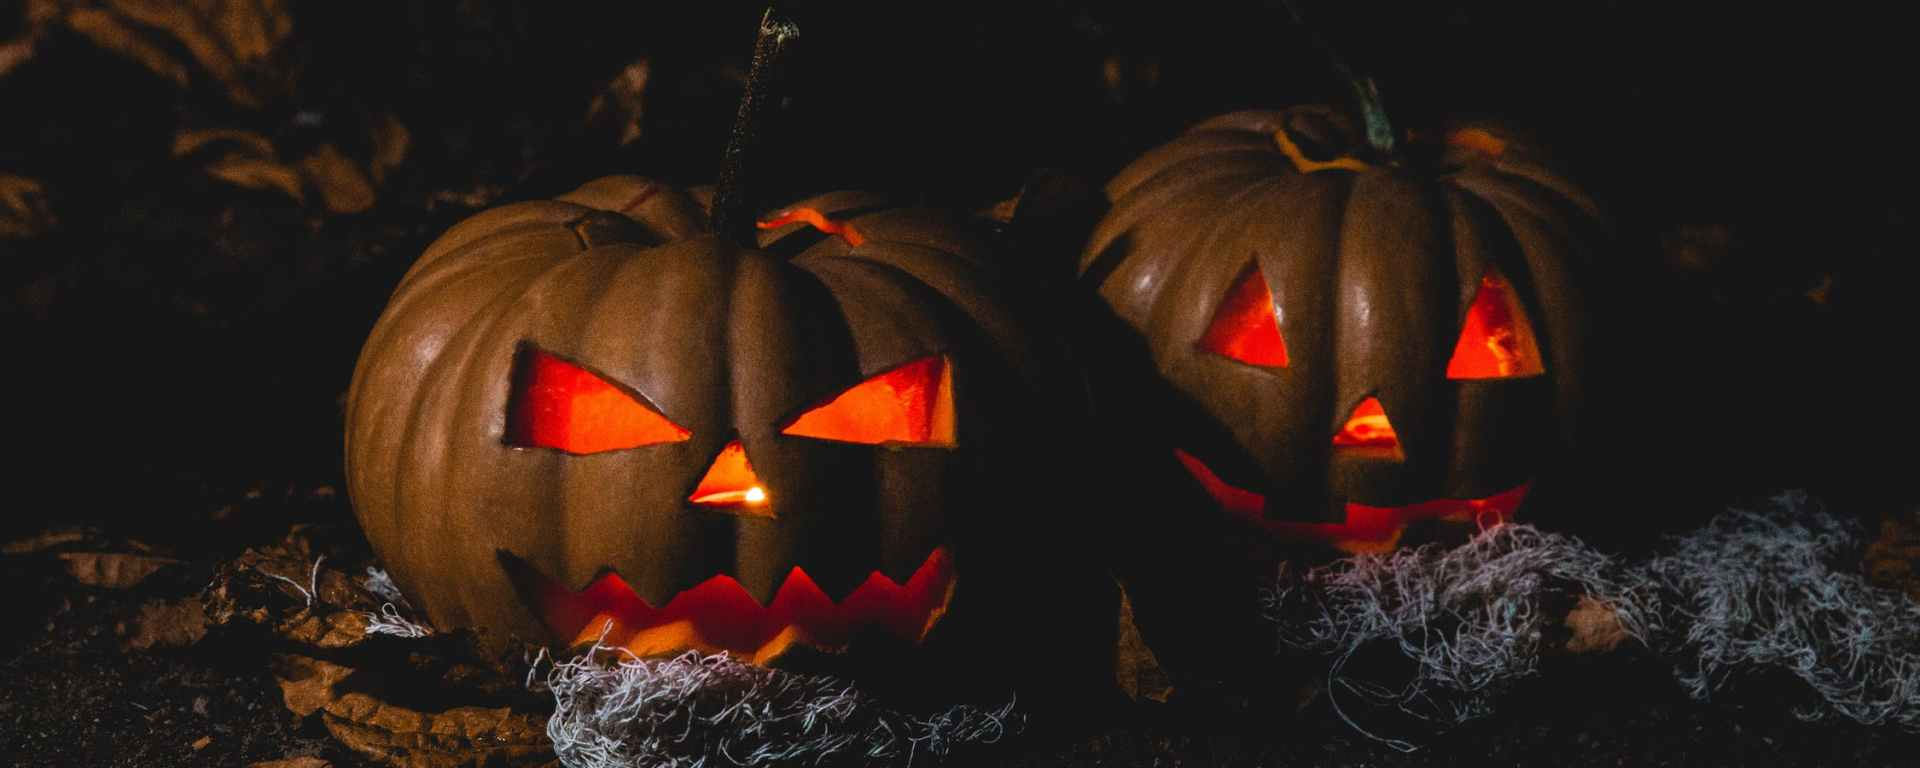 Current Events For Halloween 2020 Volusia County Halloween Events – East Coast Current